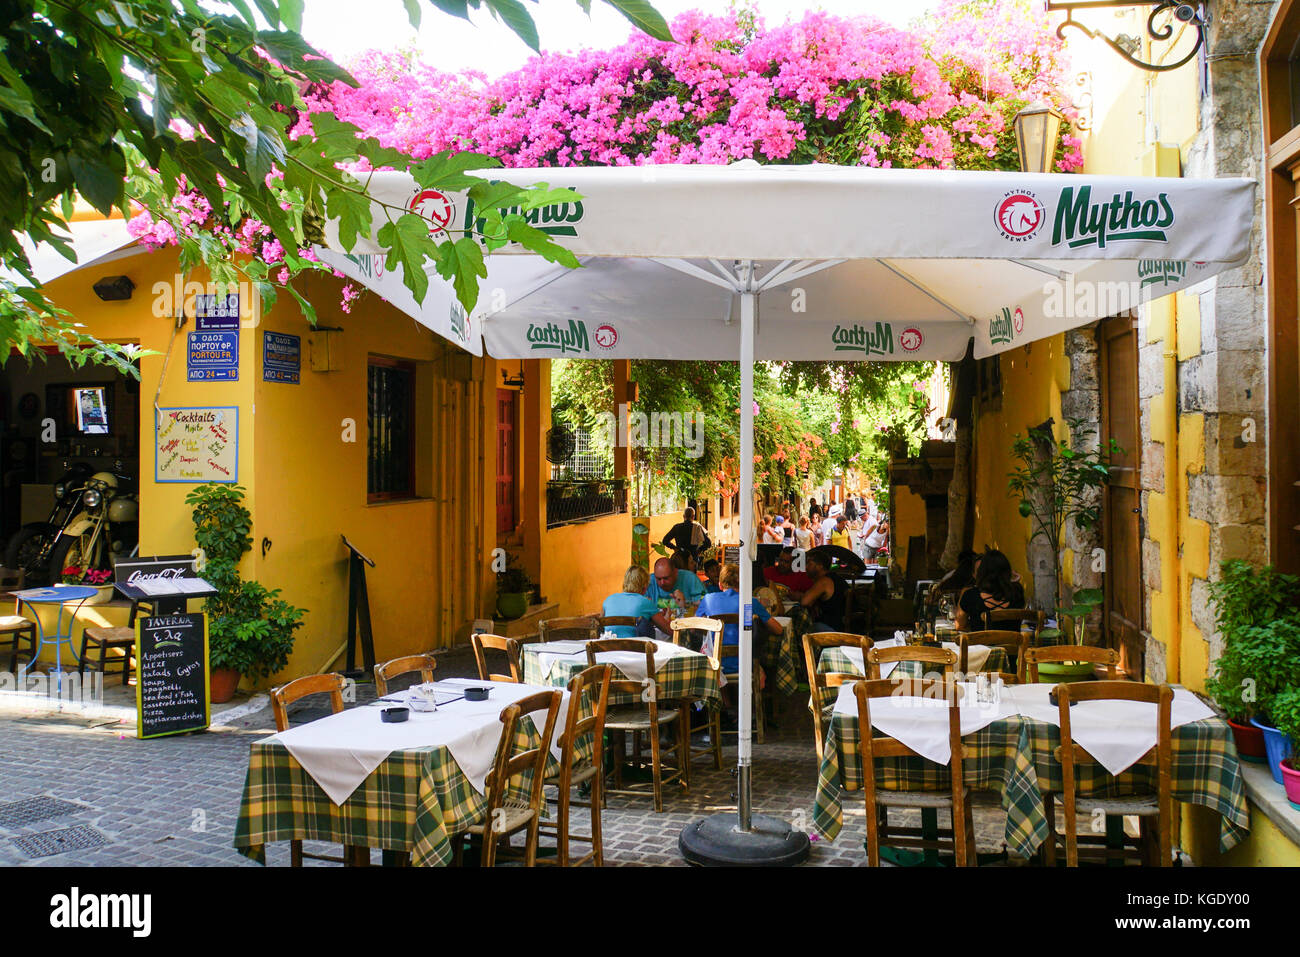 Outdoor dining in Chania, Crete, Greece - Stock Image